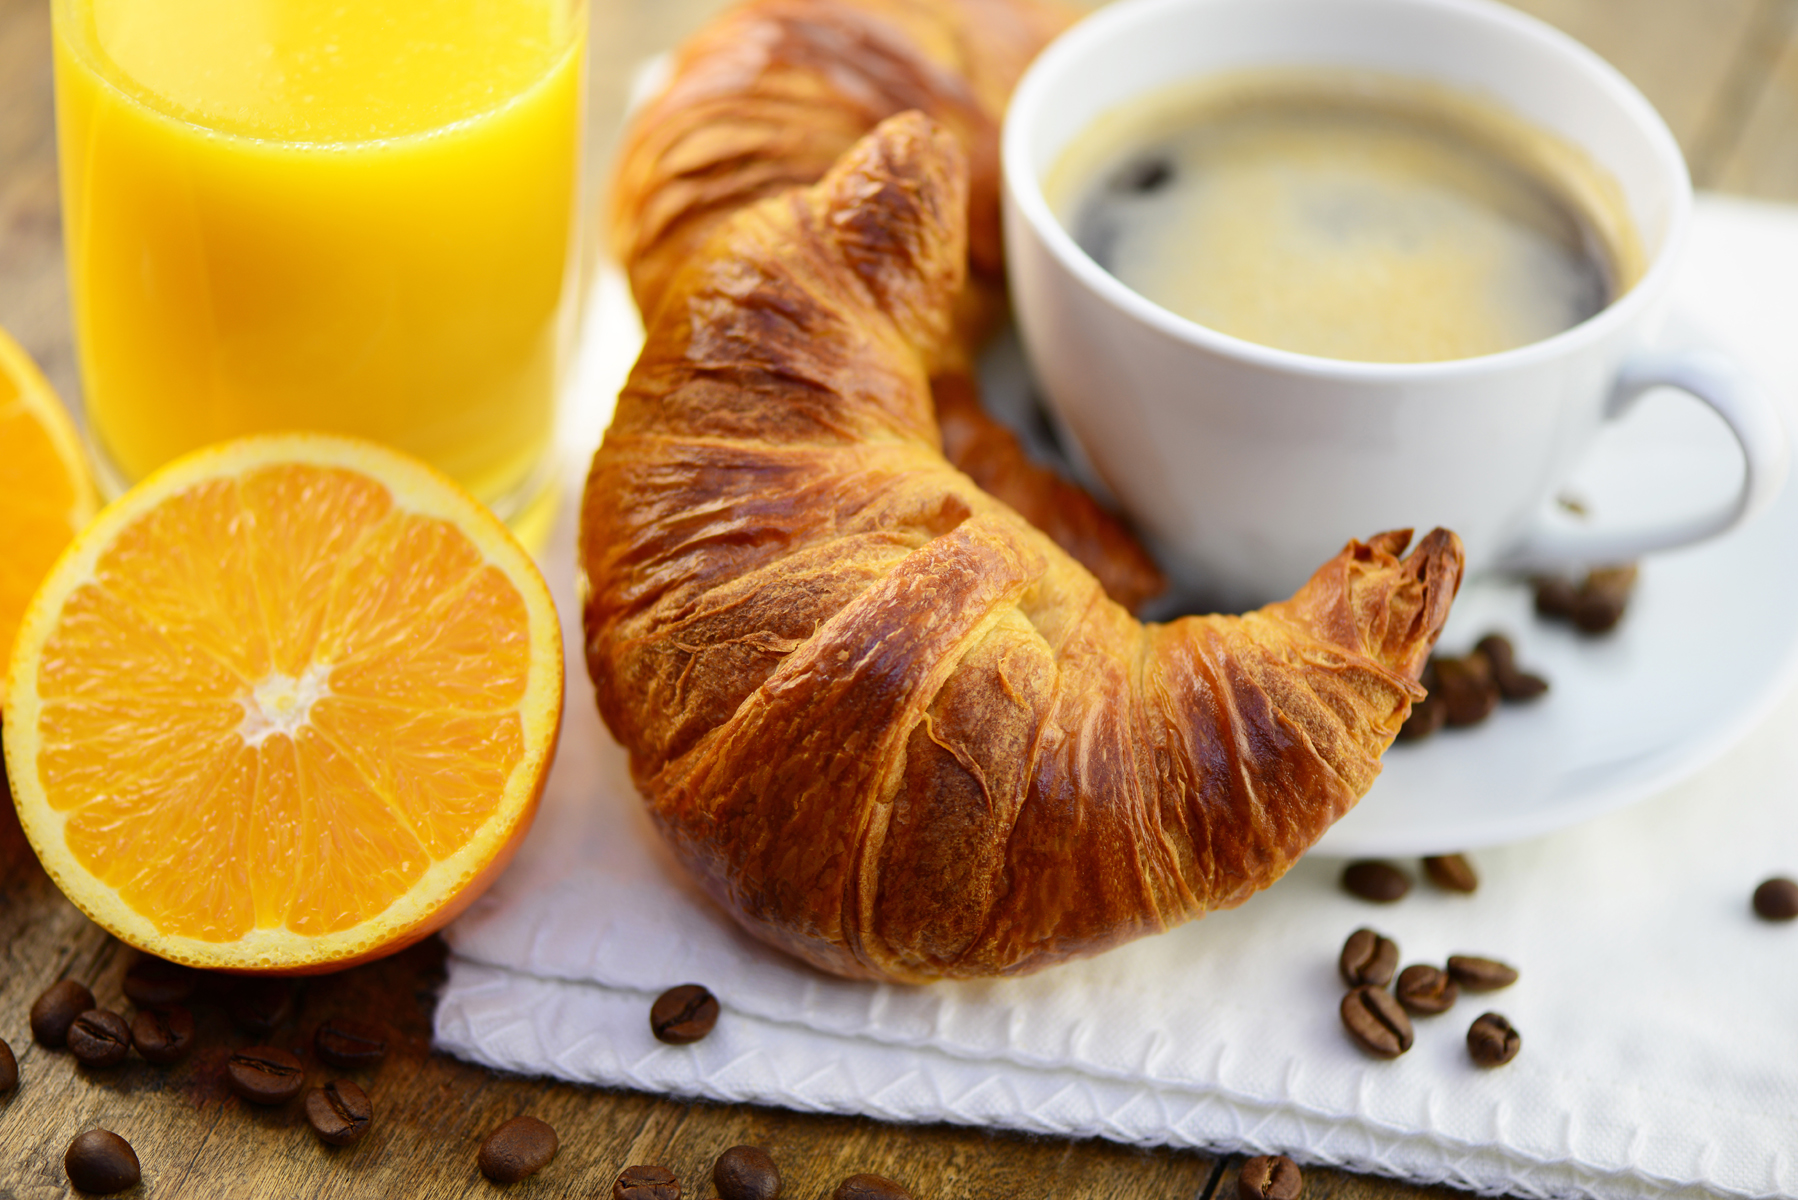 Best Western Plus Elysée Secret express breakfast to go